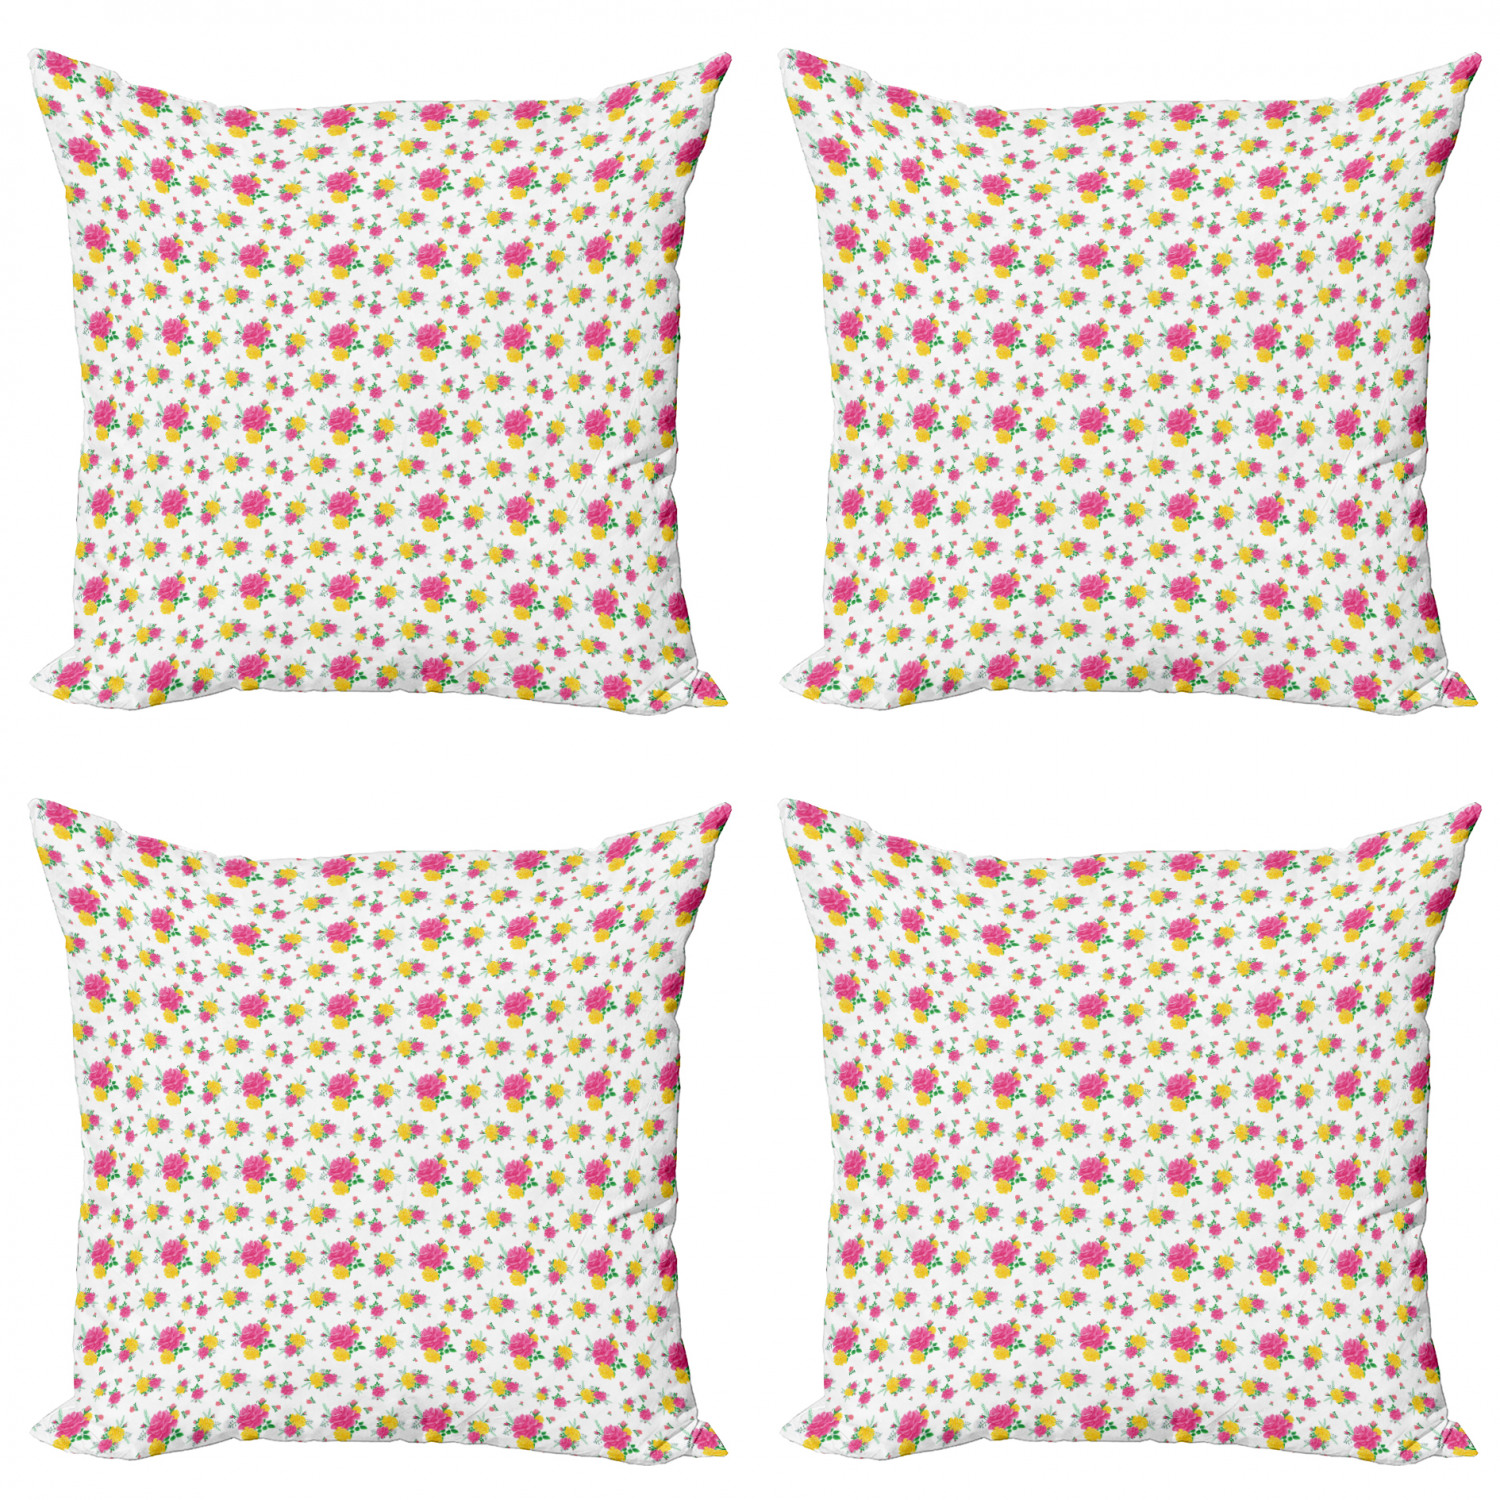 Ambesonne-Floral-Drawings-Cushion-Cover-Set-of-4-for-Couch-and-Bed-in-4-Sizes thumbnail 43